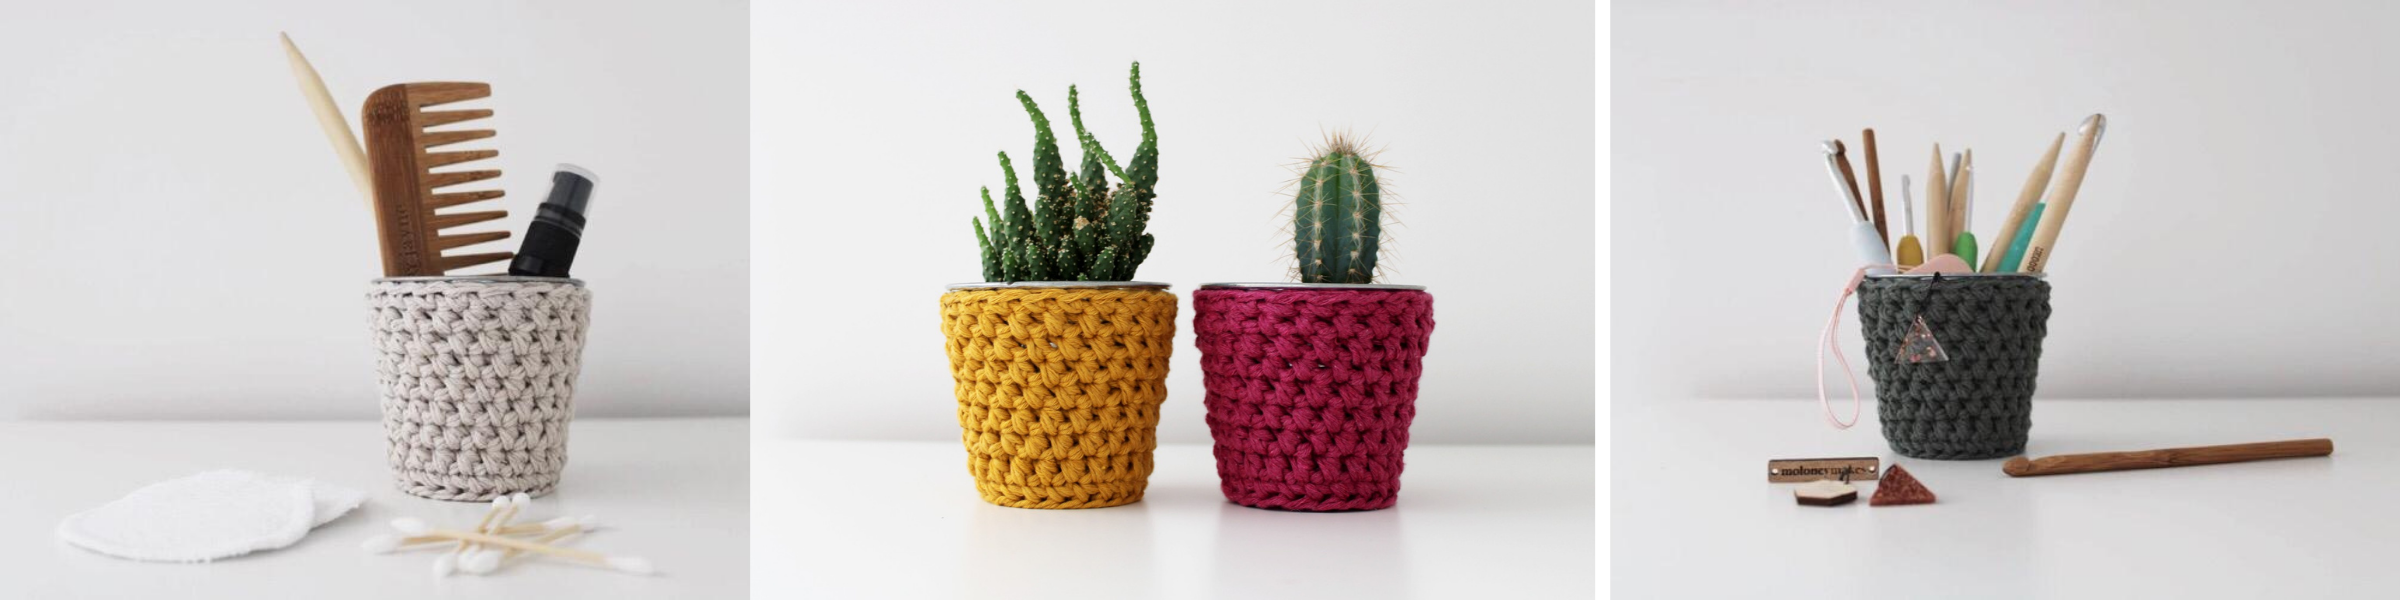 Crochet pots from mini crochet pot kit shown for use in bathroom, as plant pot and for craft tools